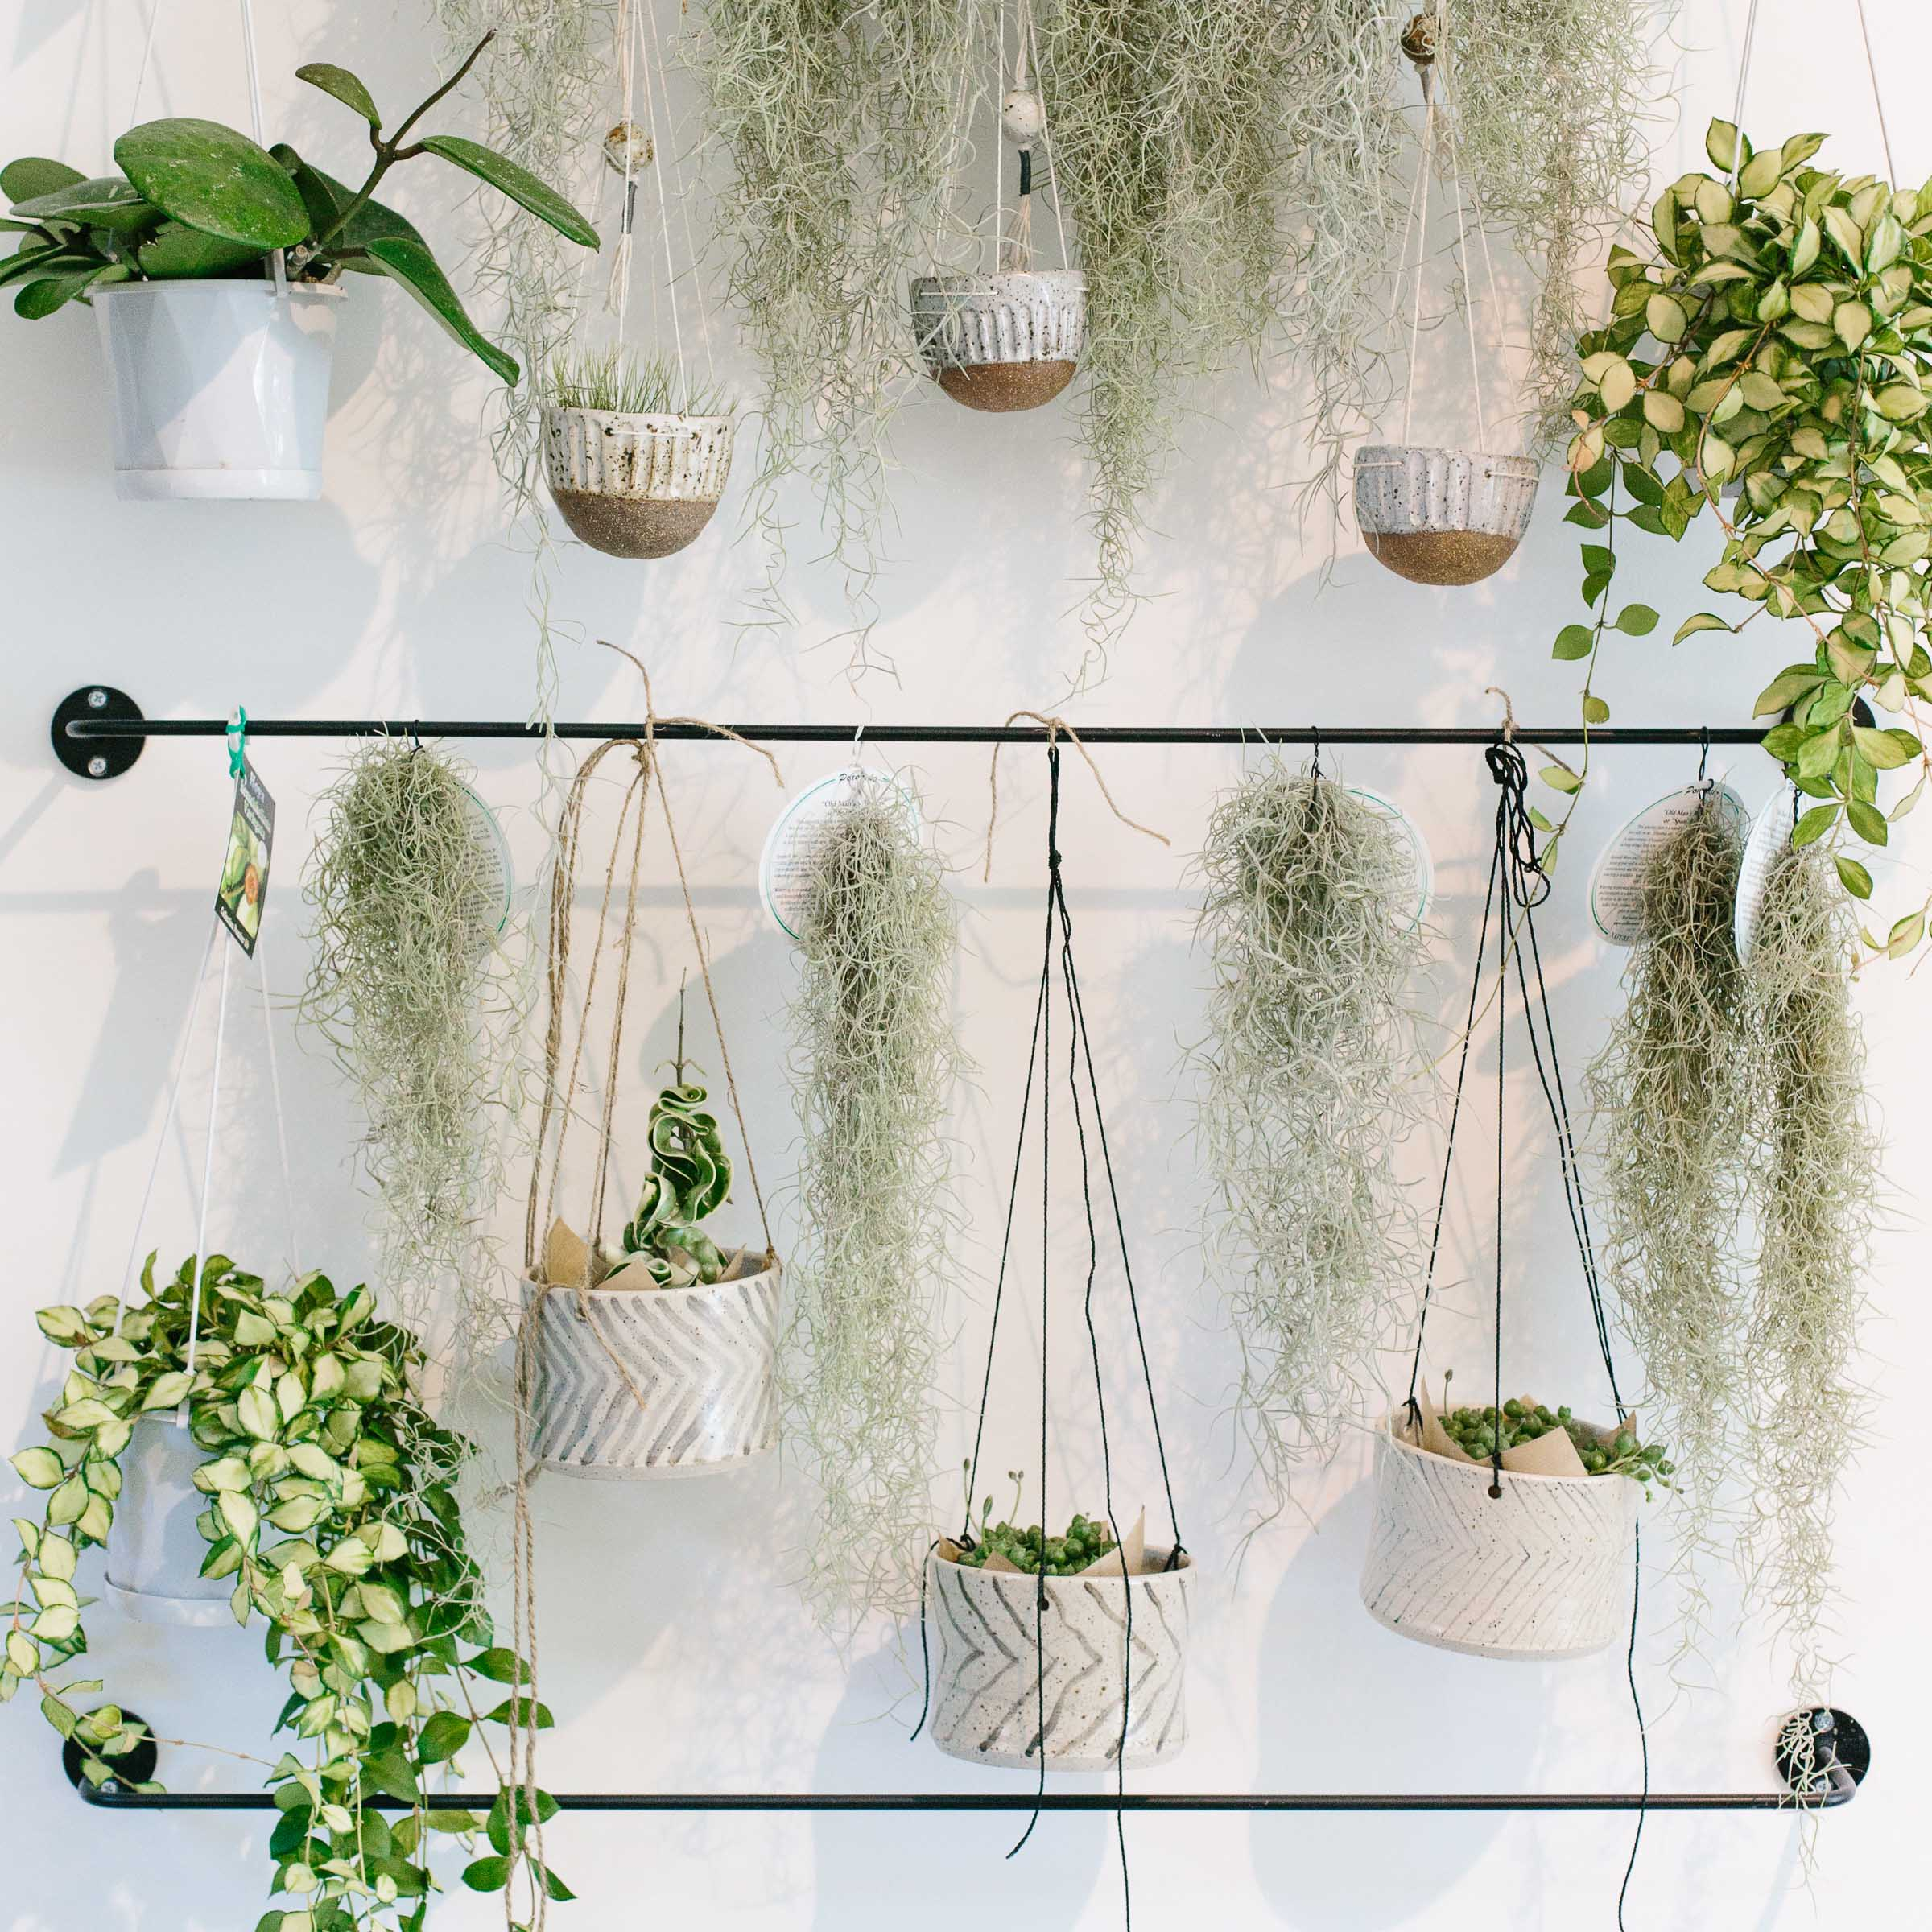 Hanging planters and air plants hang from mounted black steels rods